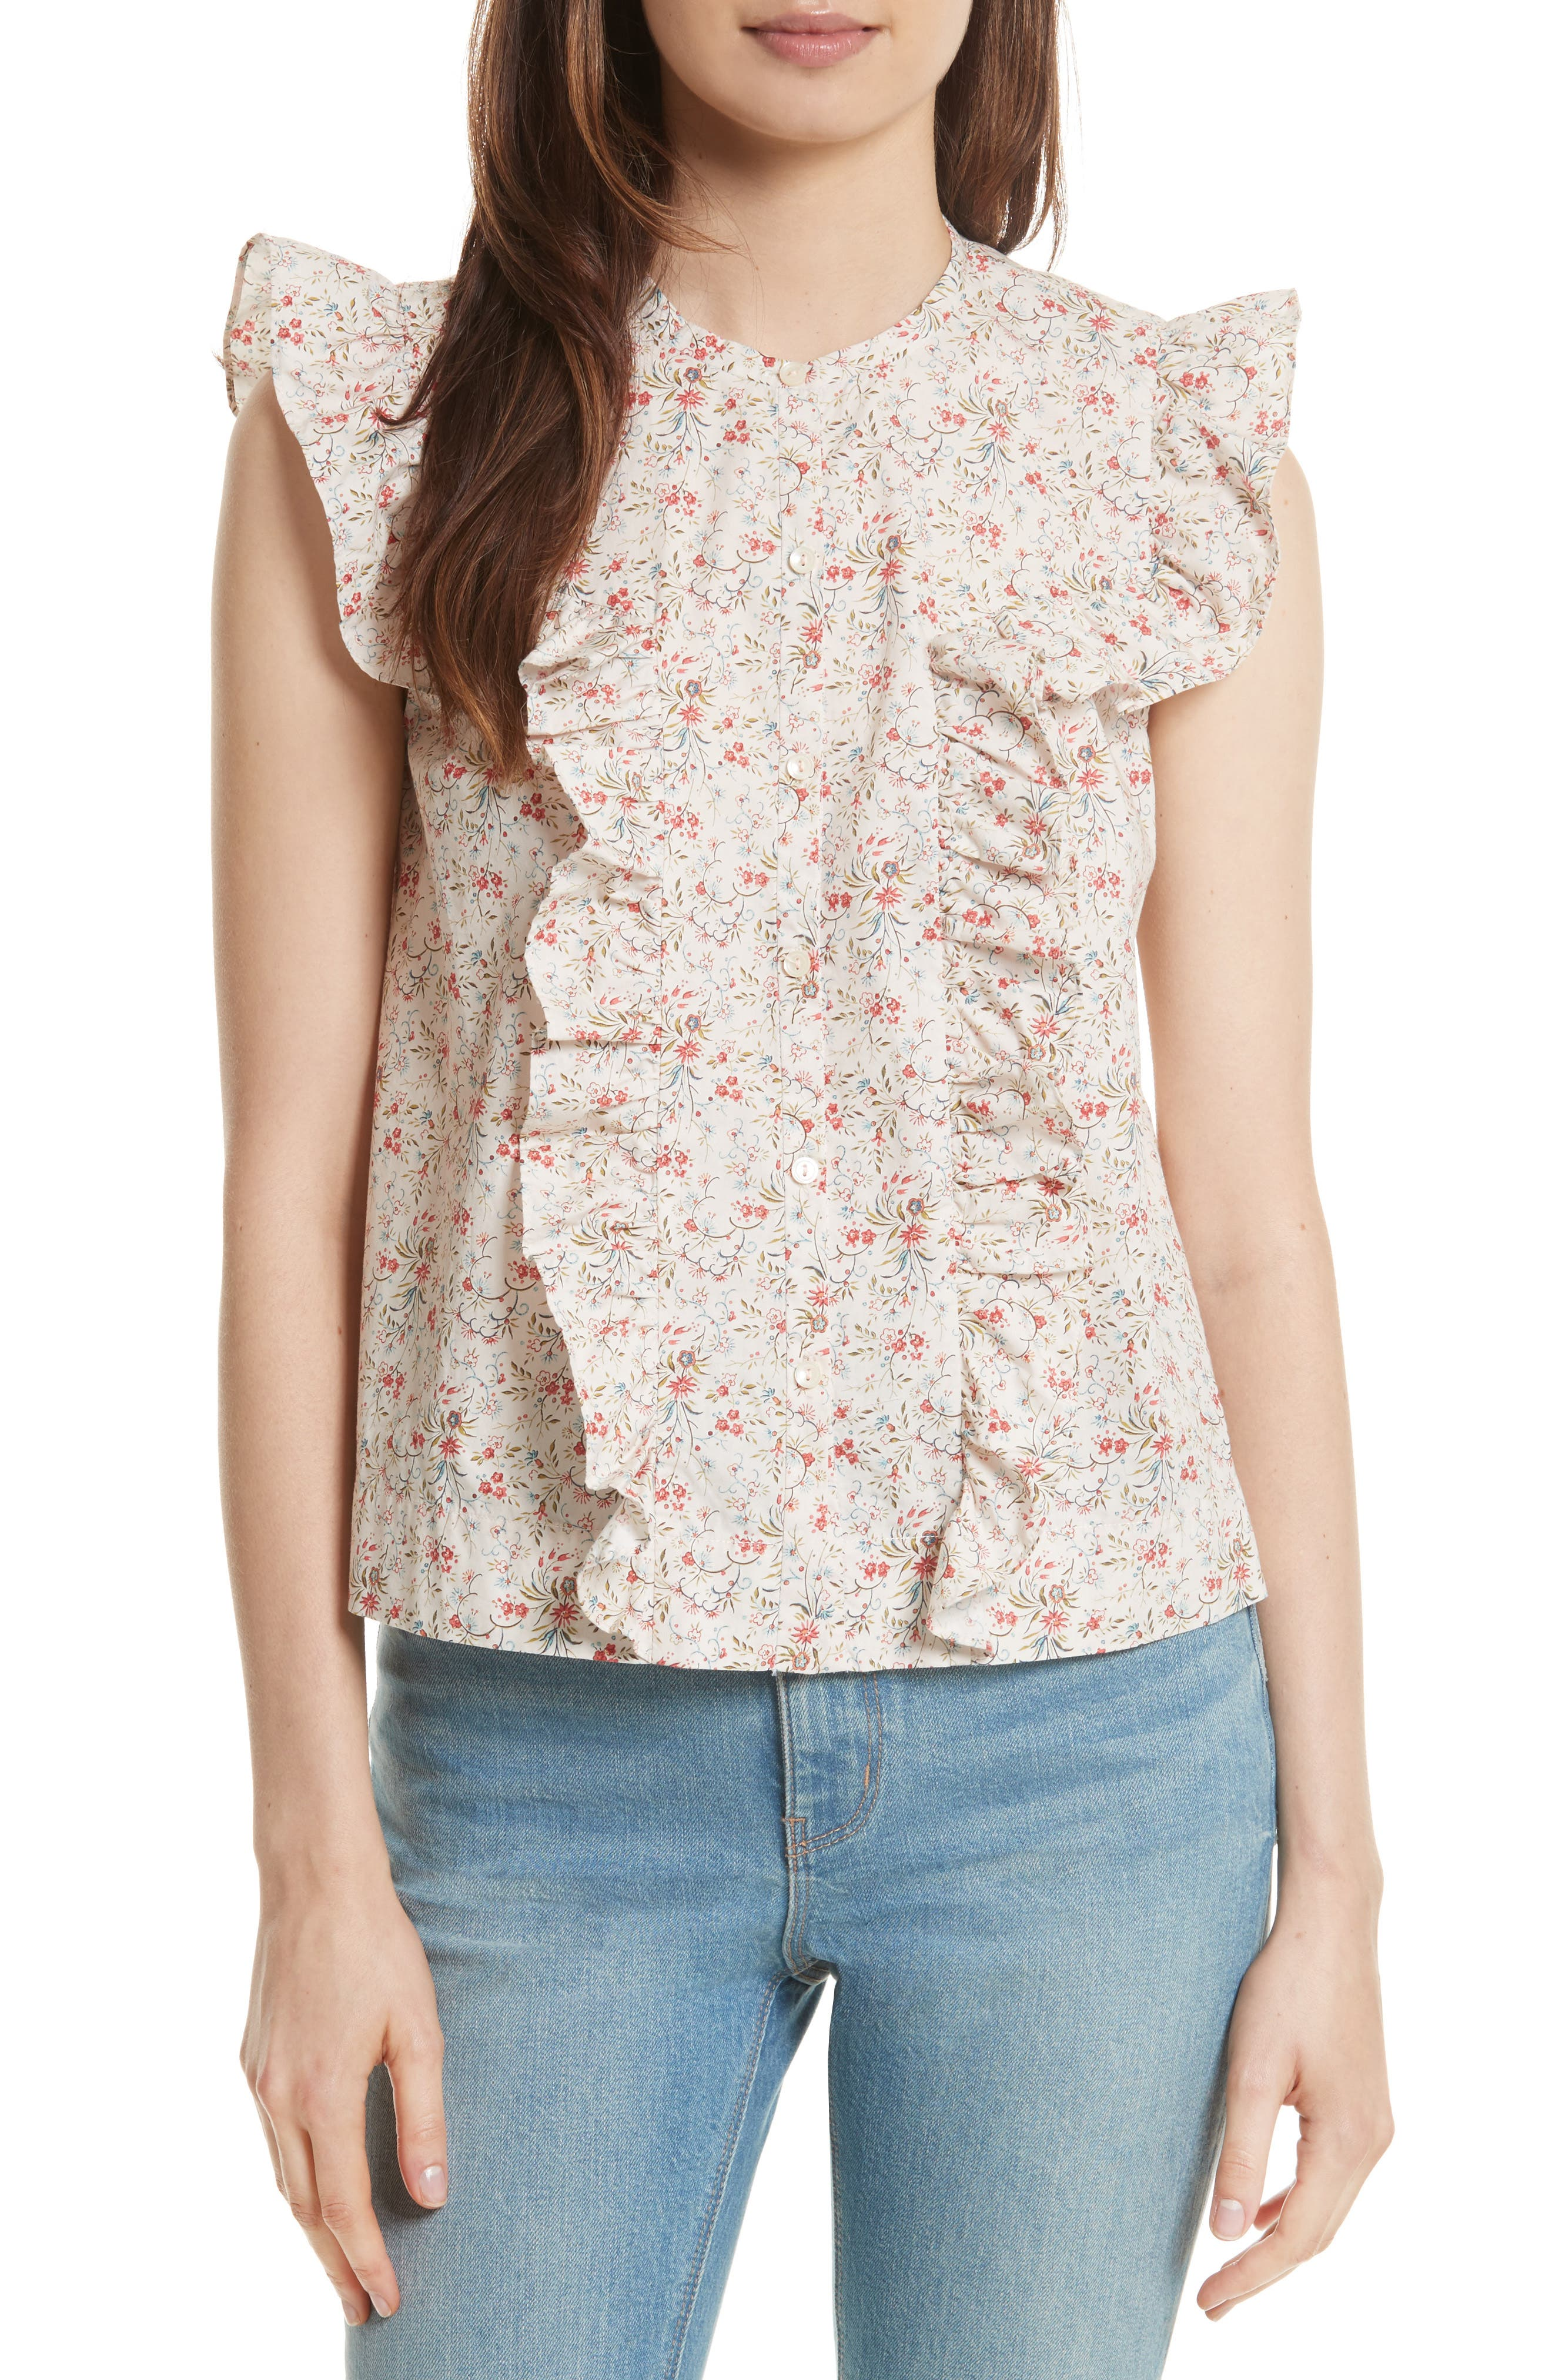 Brittany Sleeveless Floral Blouse,                         Main,                         color, 902